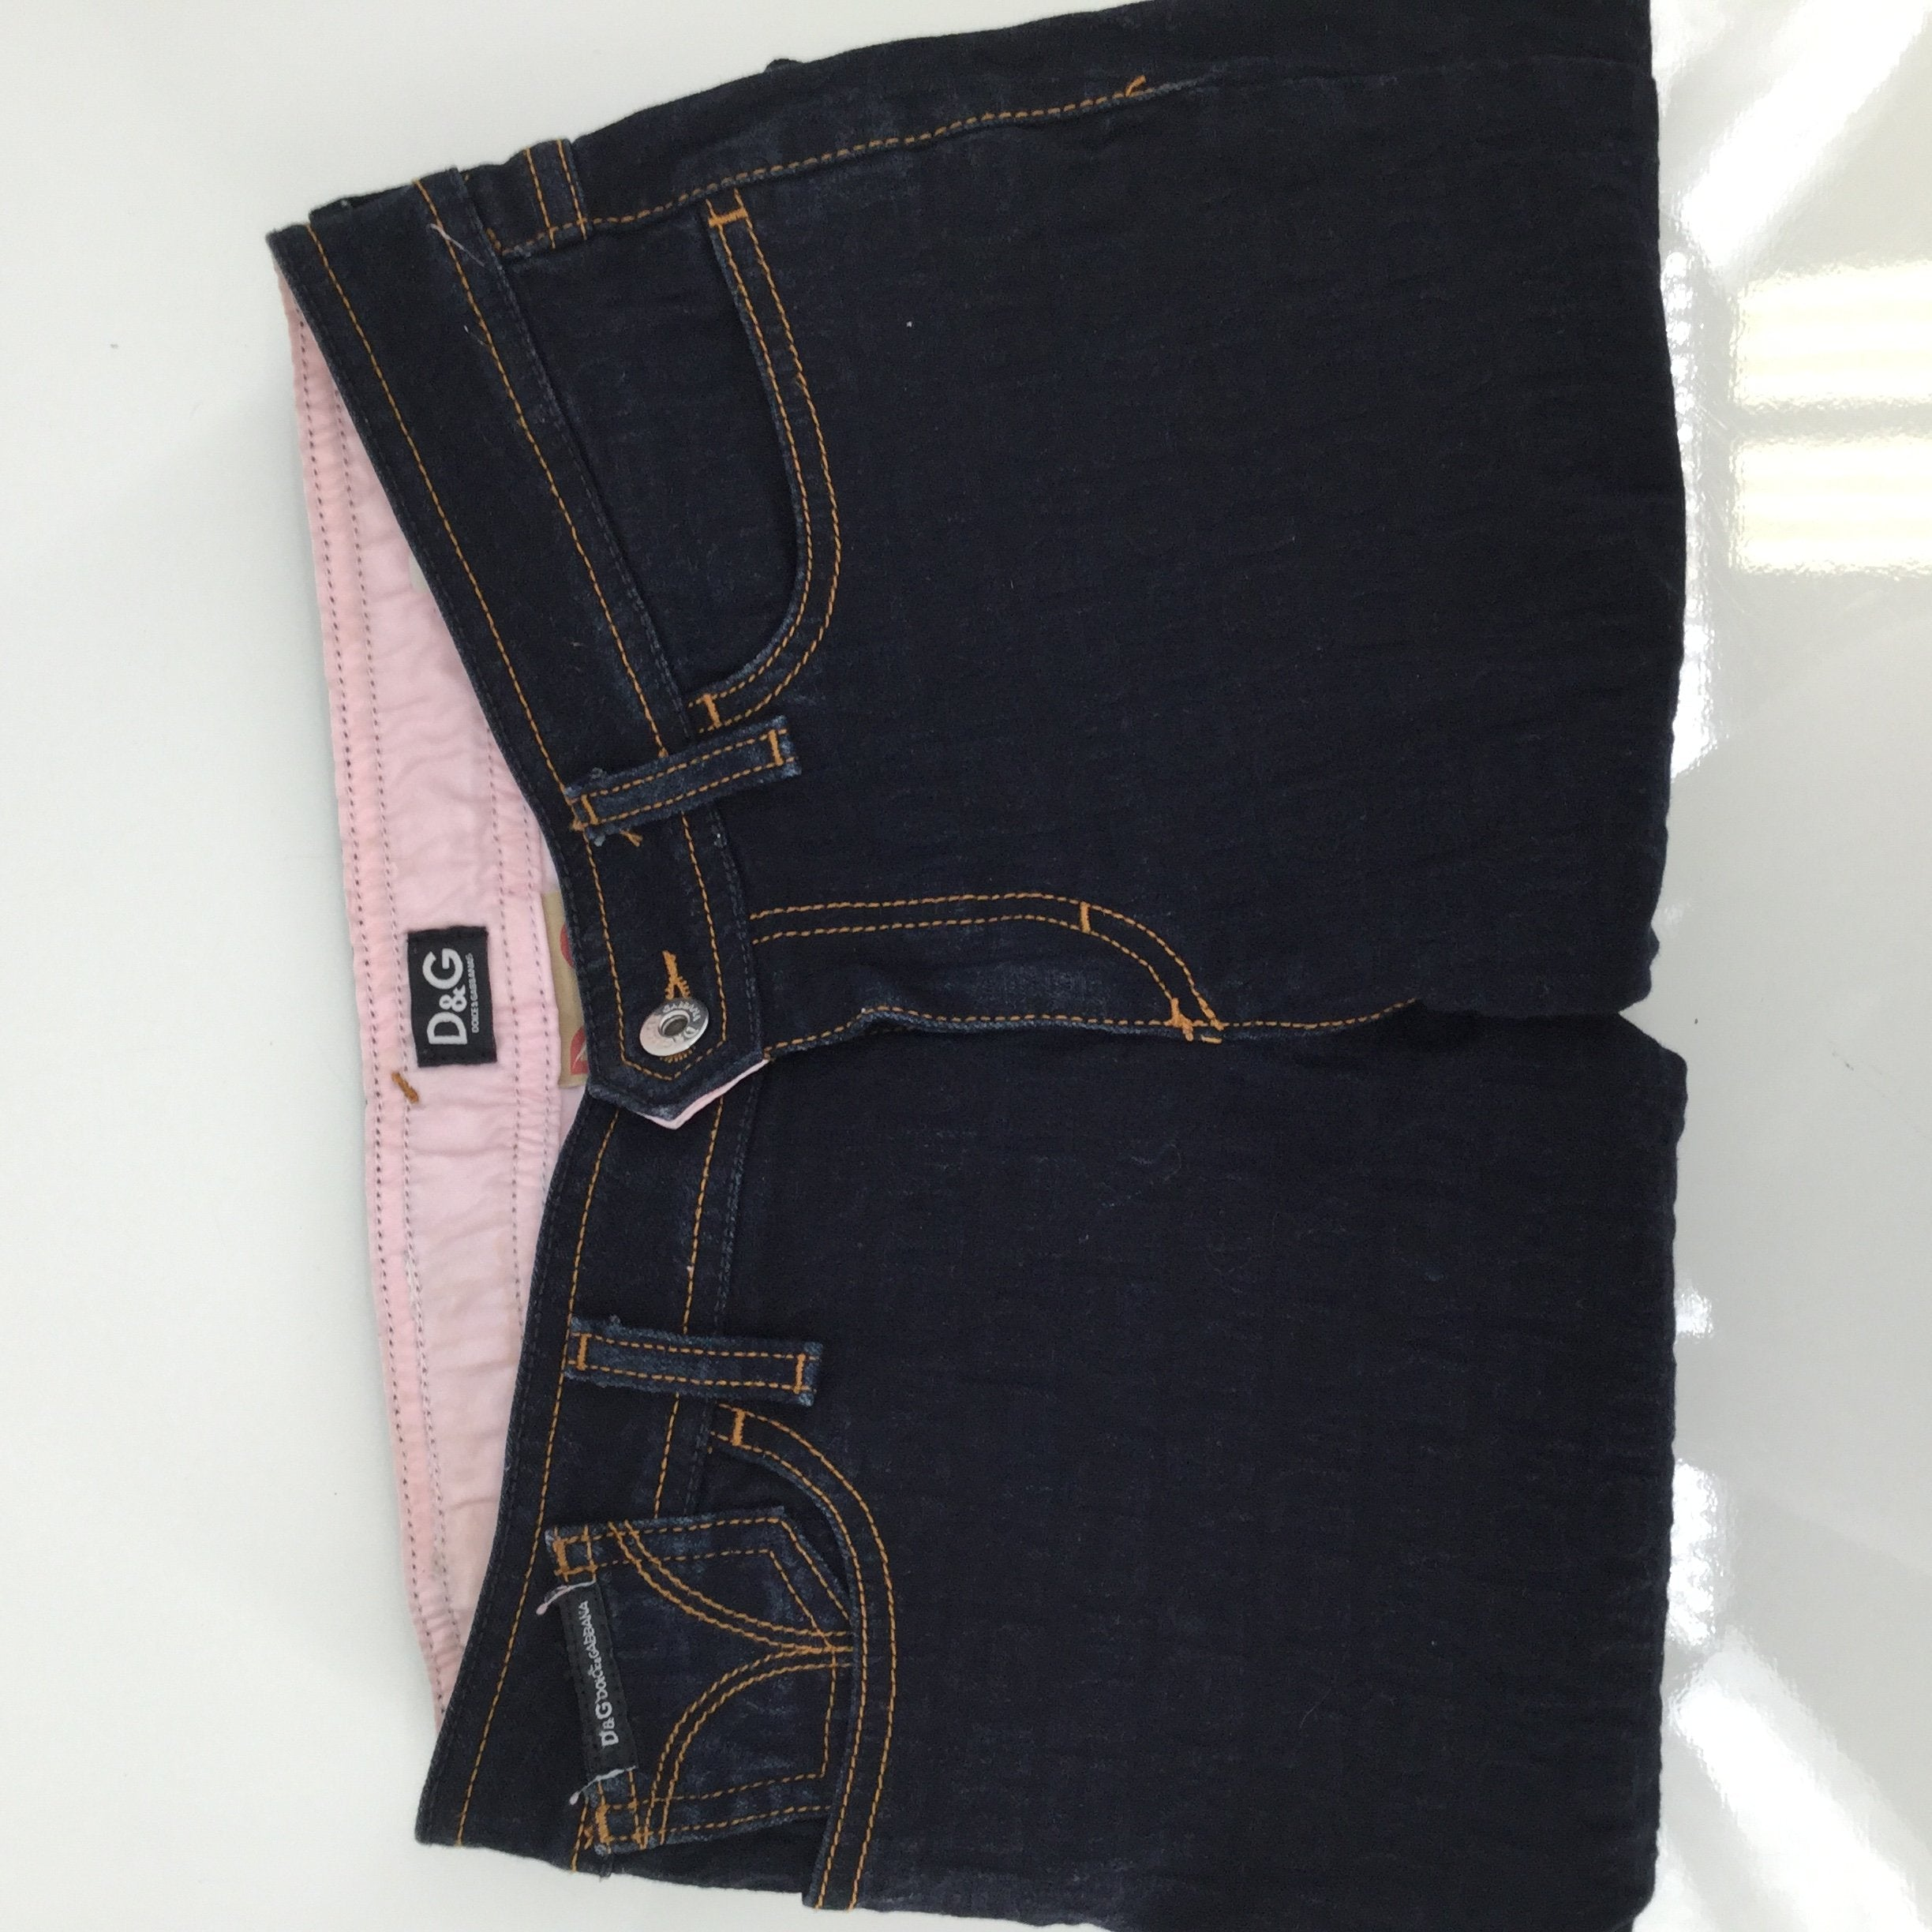 "Dolce And Gabbana Jeans, Denim, Blue, Size: 2 - THESE DOLCE AND GABBANA SKINNY JEANS HAVE A 26 INCH WAIST. THEY ARE A DARK BLUE WASH WITH A SUBTLE ""D&G"" PRINT. THERE ARE ZIPPERS AT THE BOTTOM OF EACH PANT LEG. THEY ARE IN VERY GOOD CONDITION AND DO NOT LOOK LIKE THEY HAVE BEEN WORN MUCH."